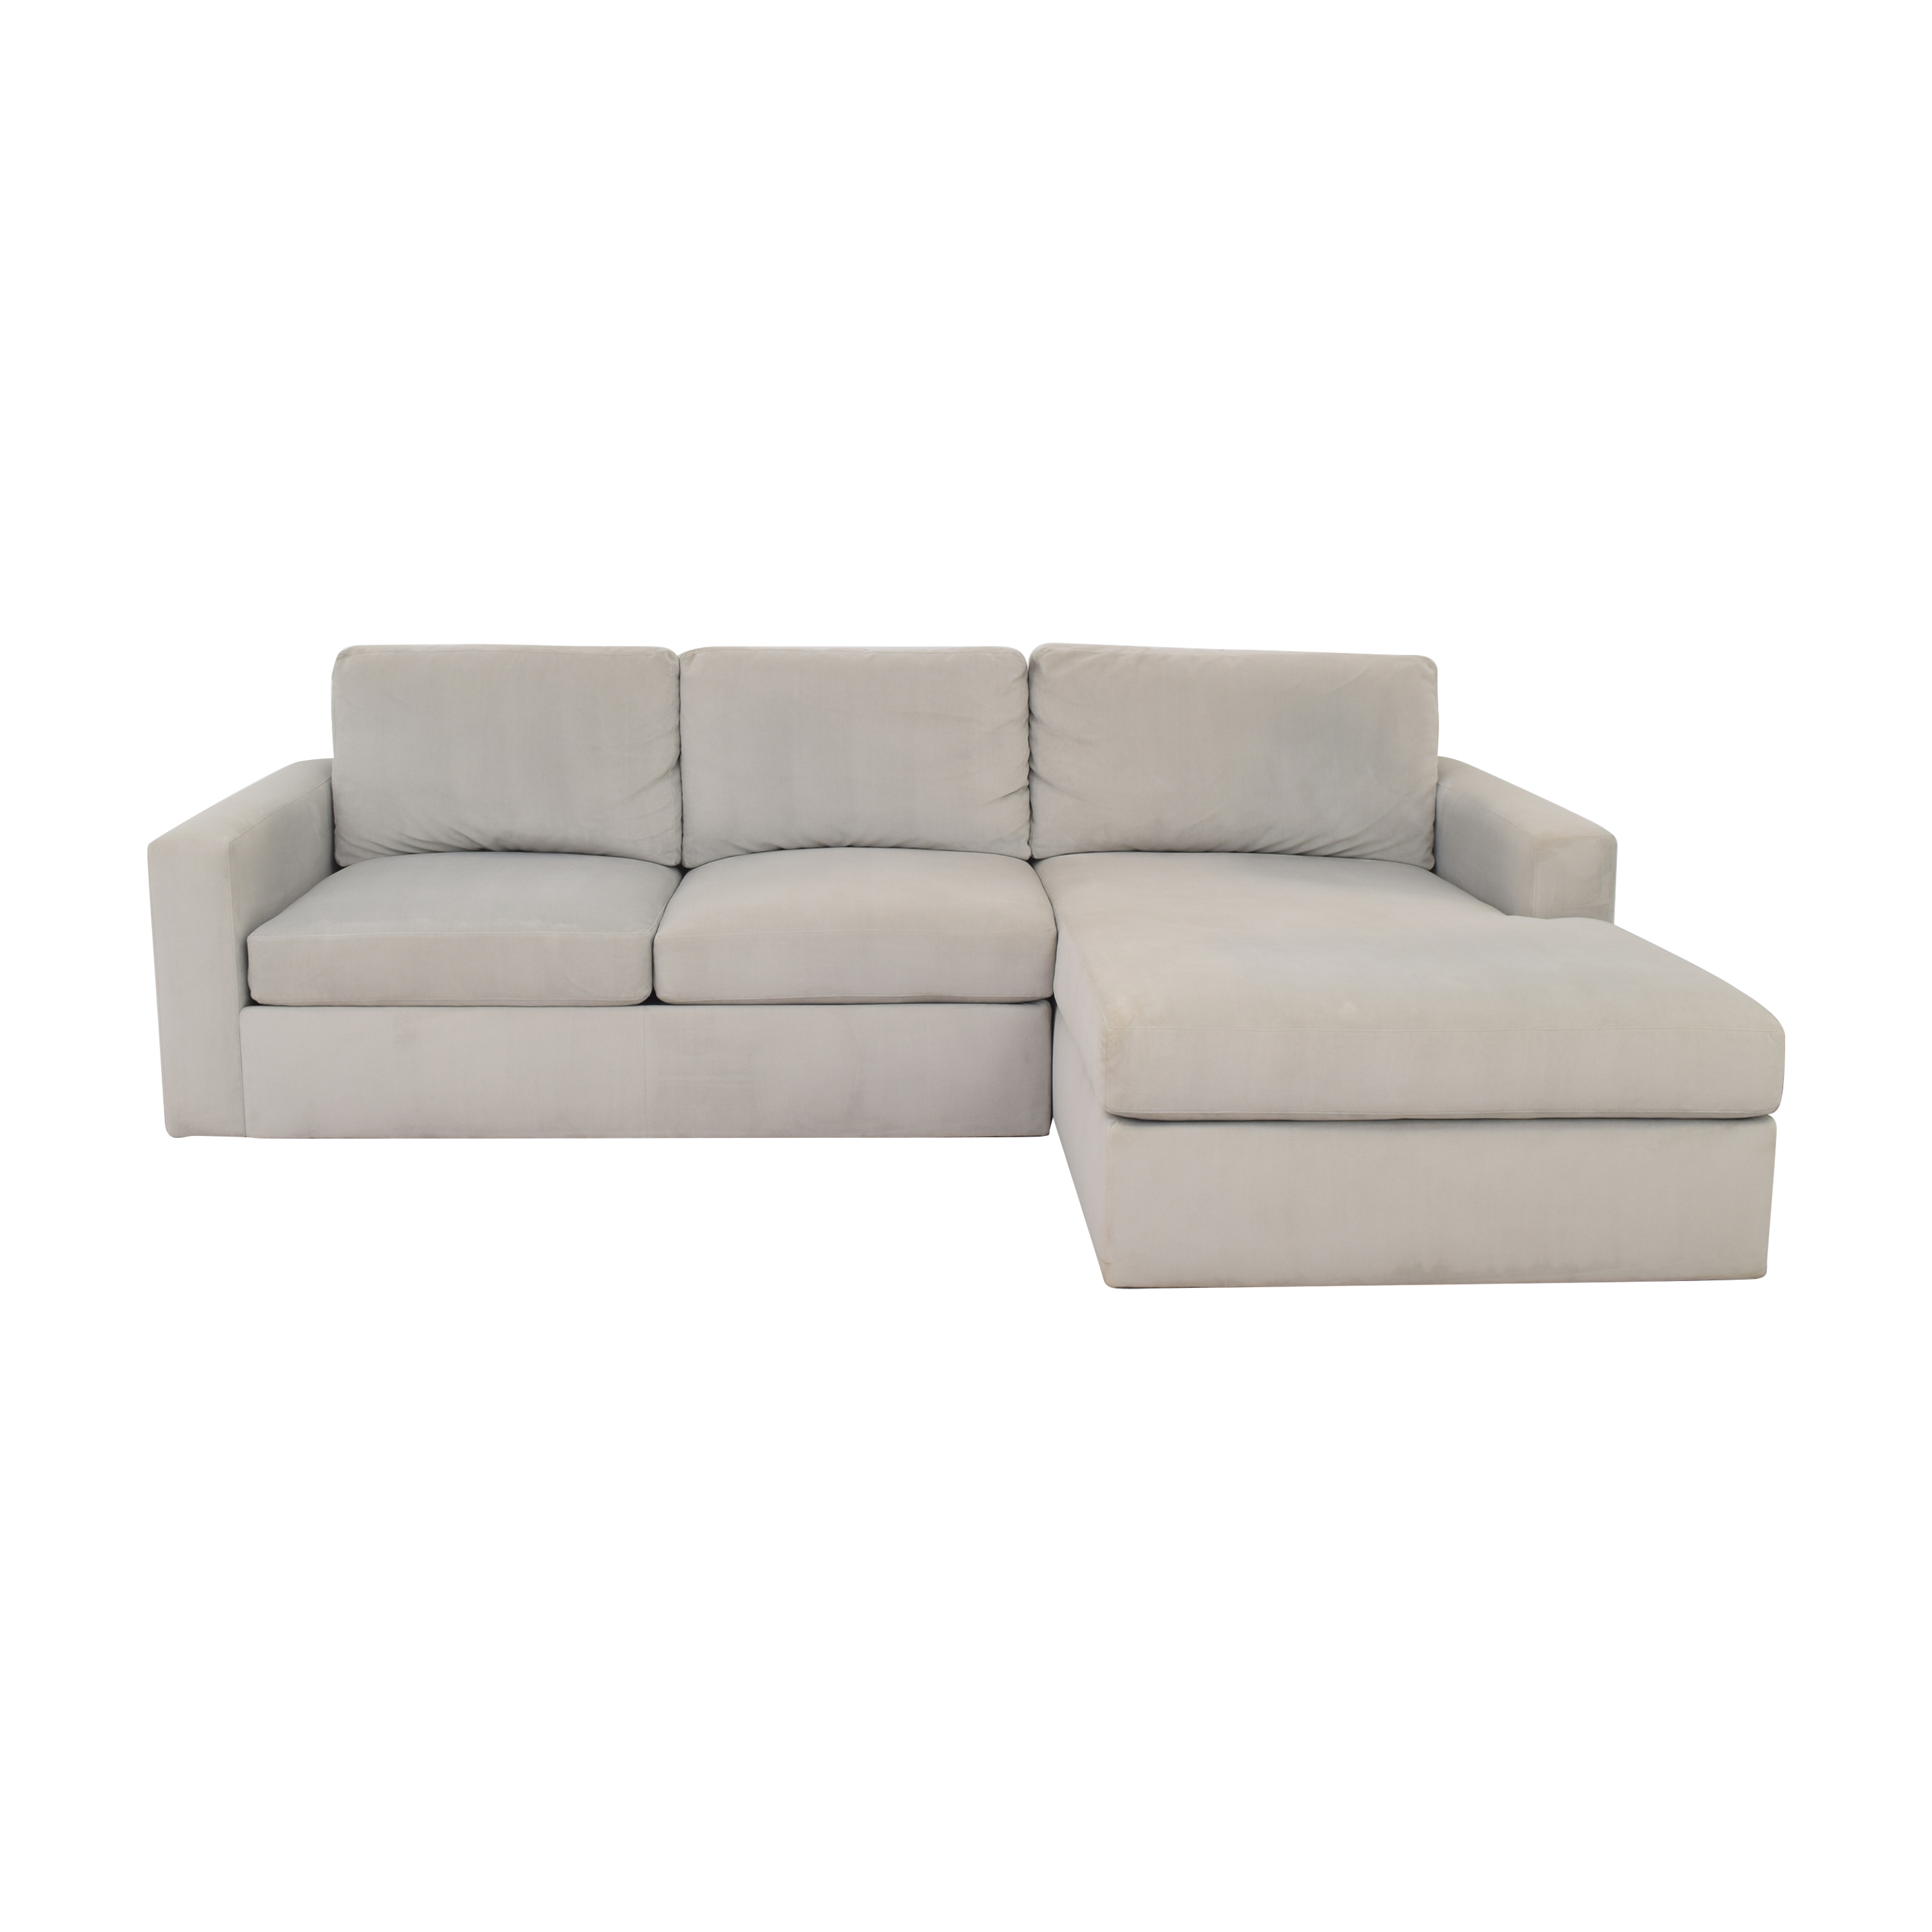 Room & Board Modern Sectional Sofa with Chaise / Sectionals